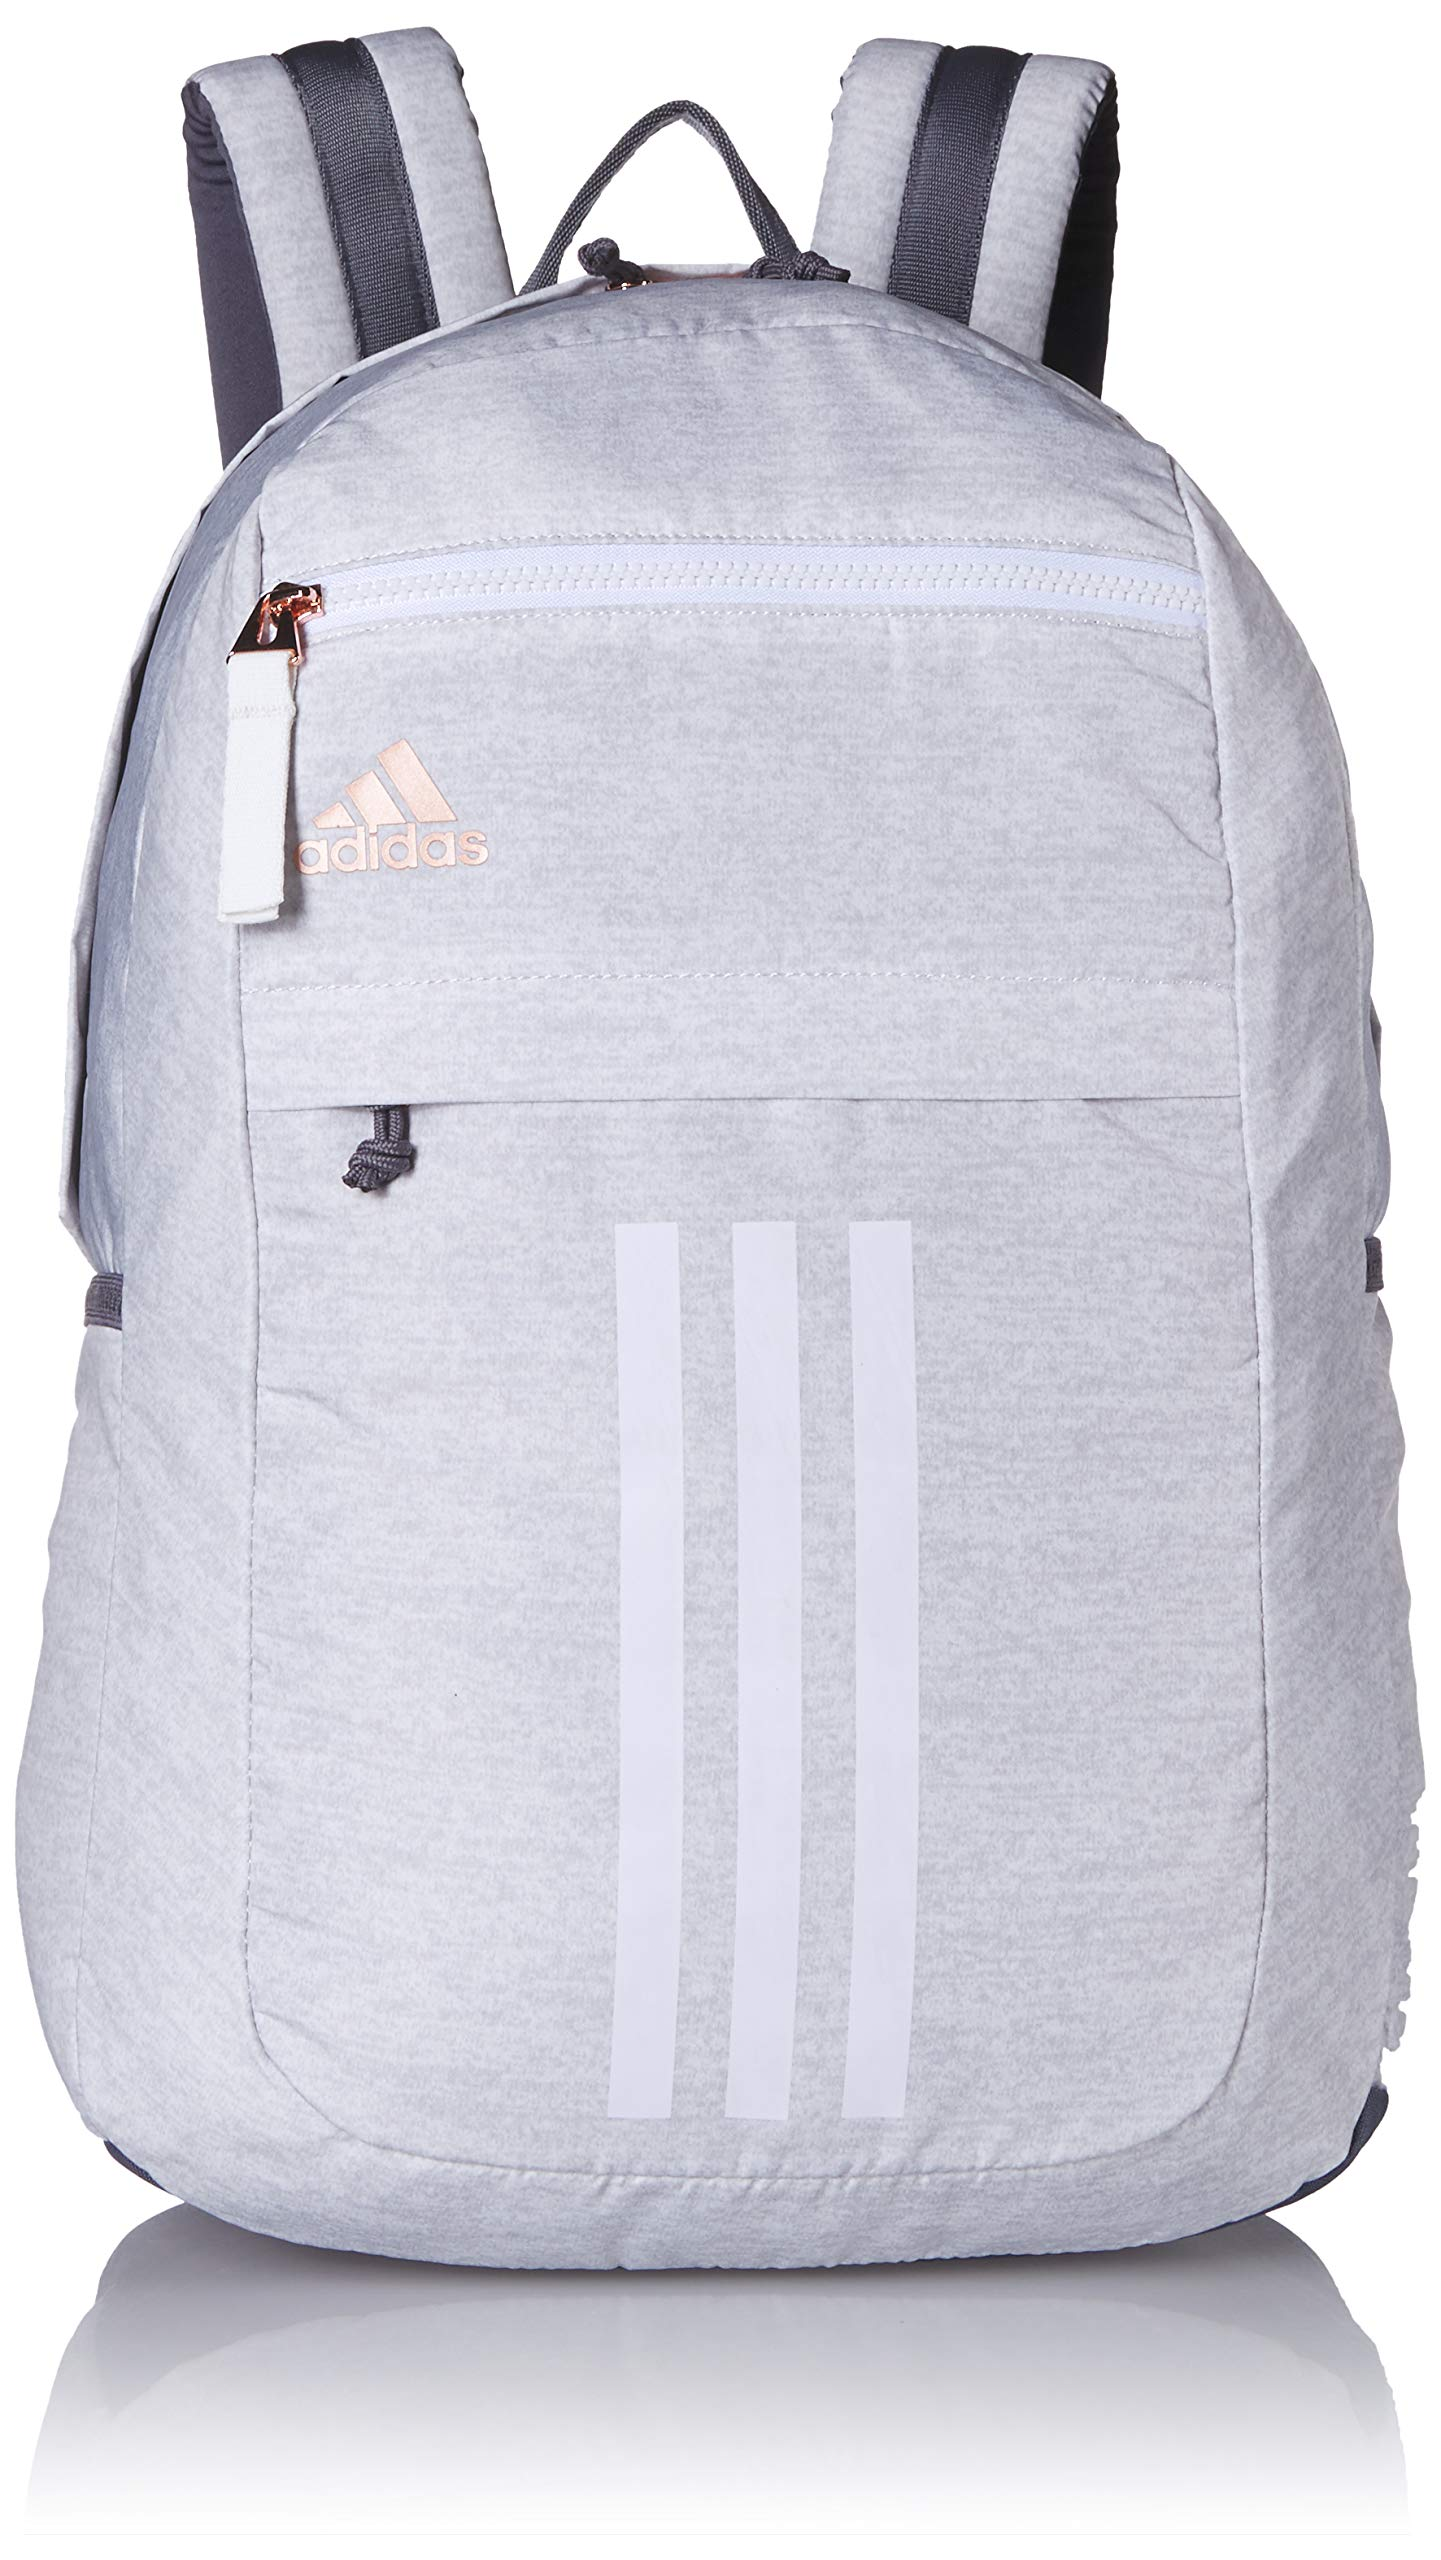 adidas Unisex League 3 Stripe Backpack, Jersey White/Rose Gold, ONE SIZE by adidas